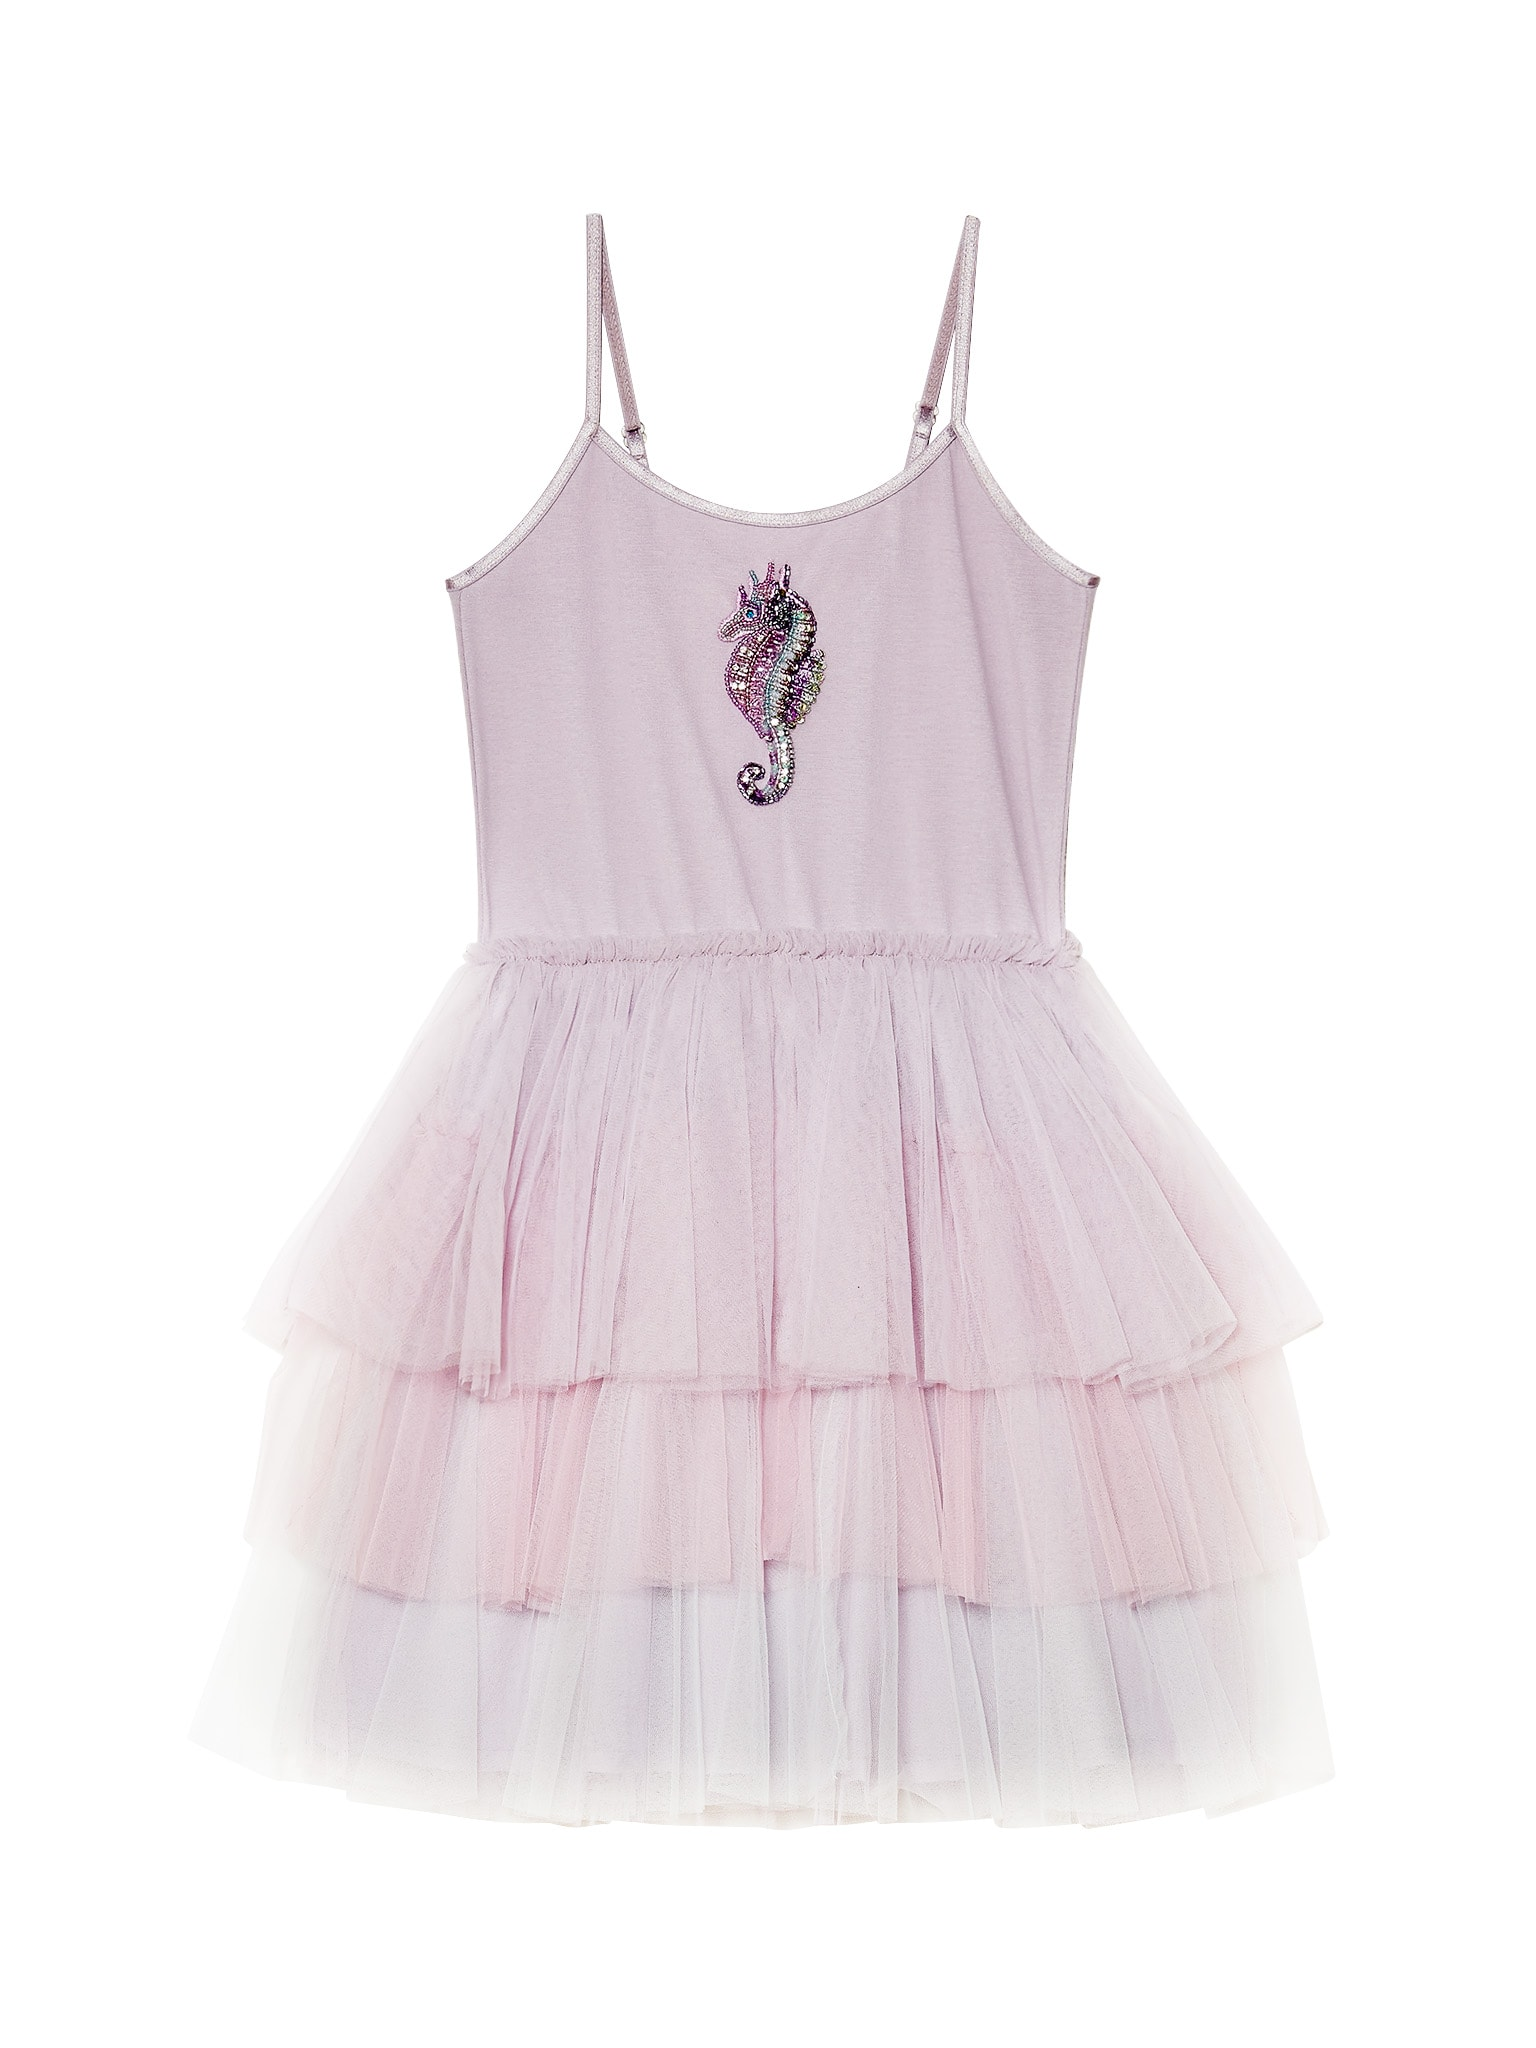 Tdm4205 rocking seahorse tutu dress 01 min